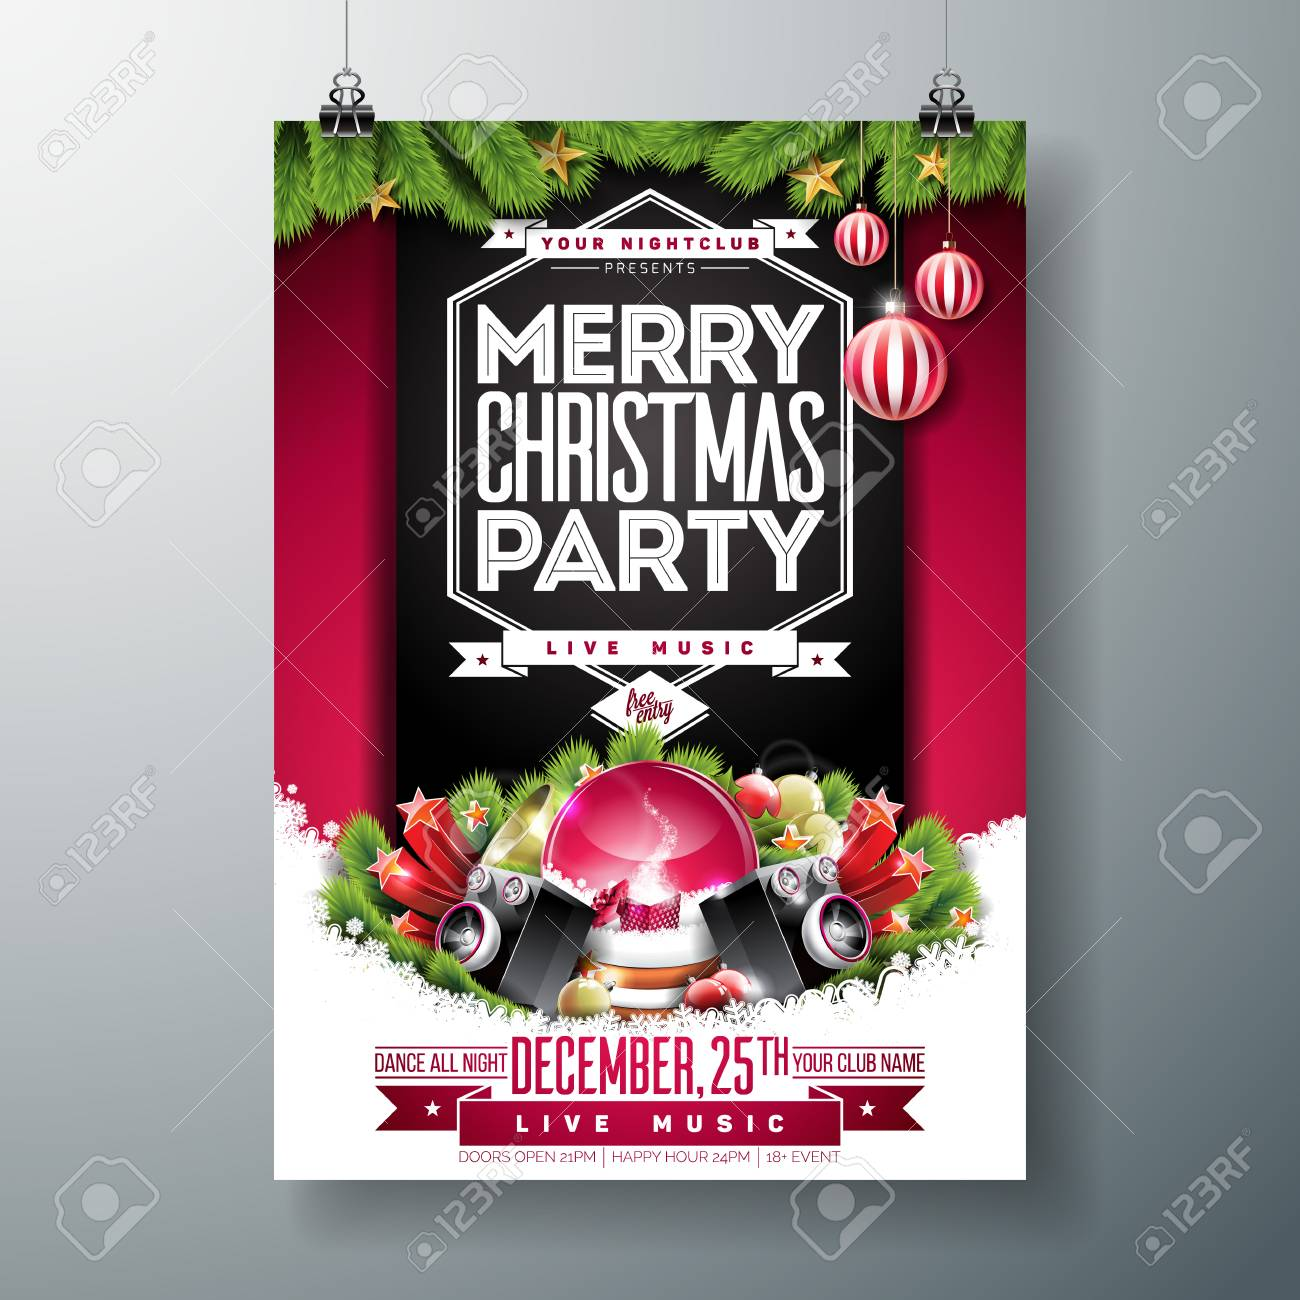 Christmas Party Flyer.Stock Illustration